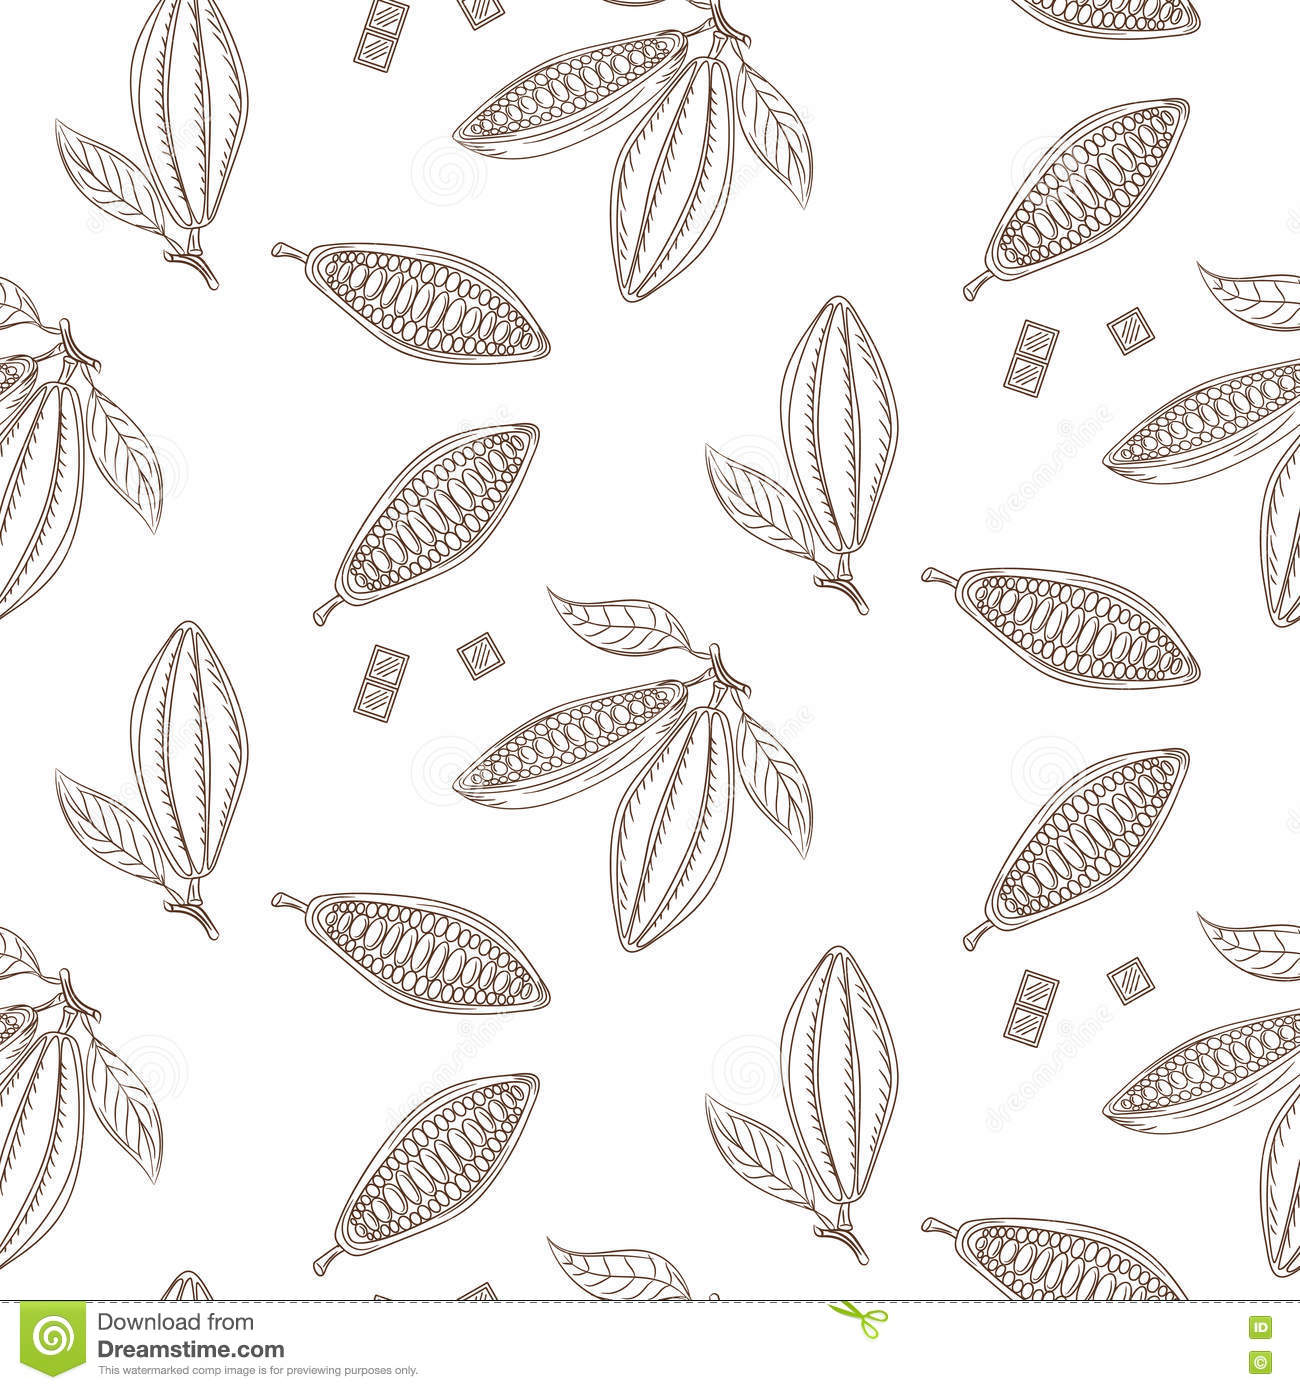 Cocoa Beans Outline Seamless Pattern  Chocolate Monochrome